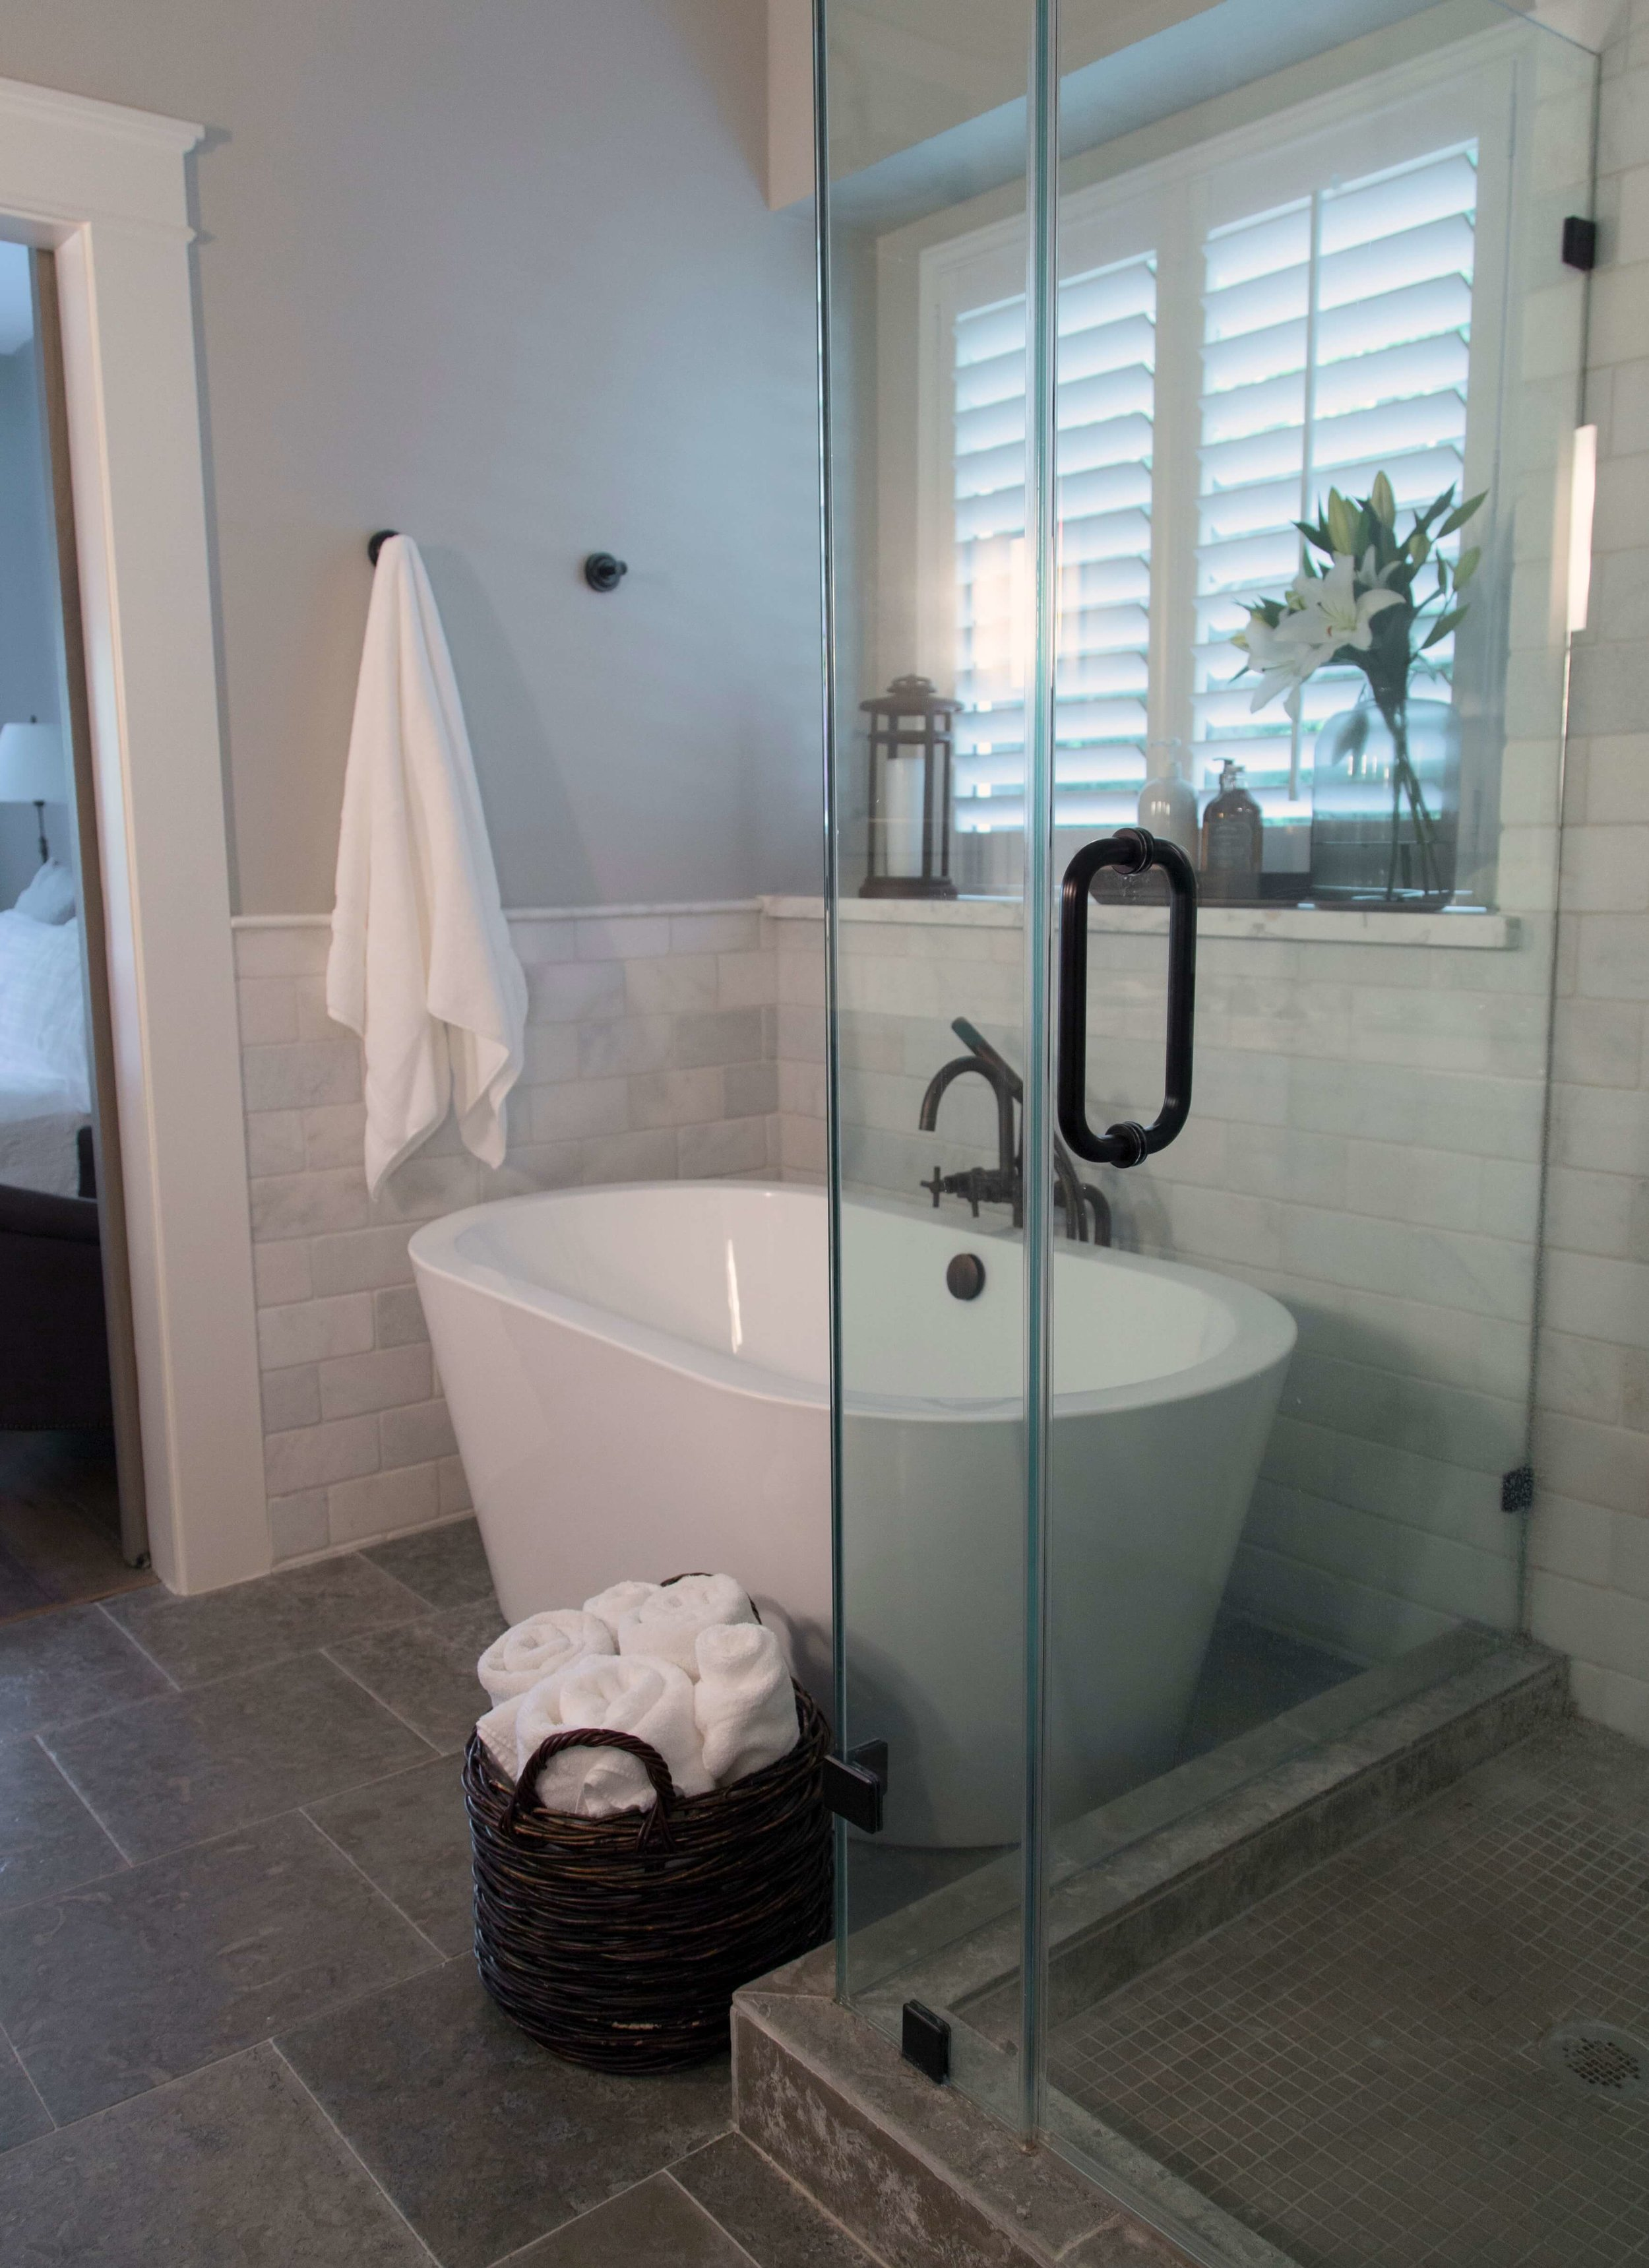 Bathroom Design Quick Tip A Sure Fire Way To Make Your Small Bathroom Look Bigger Designed